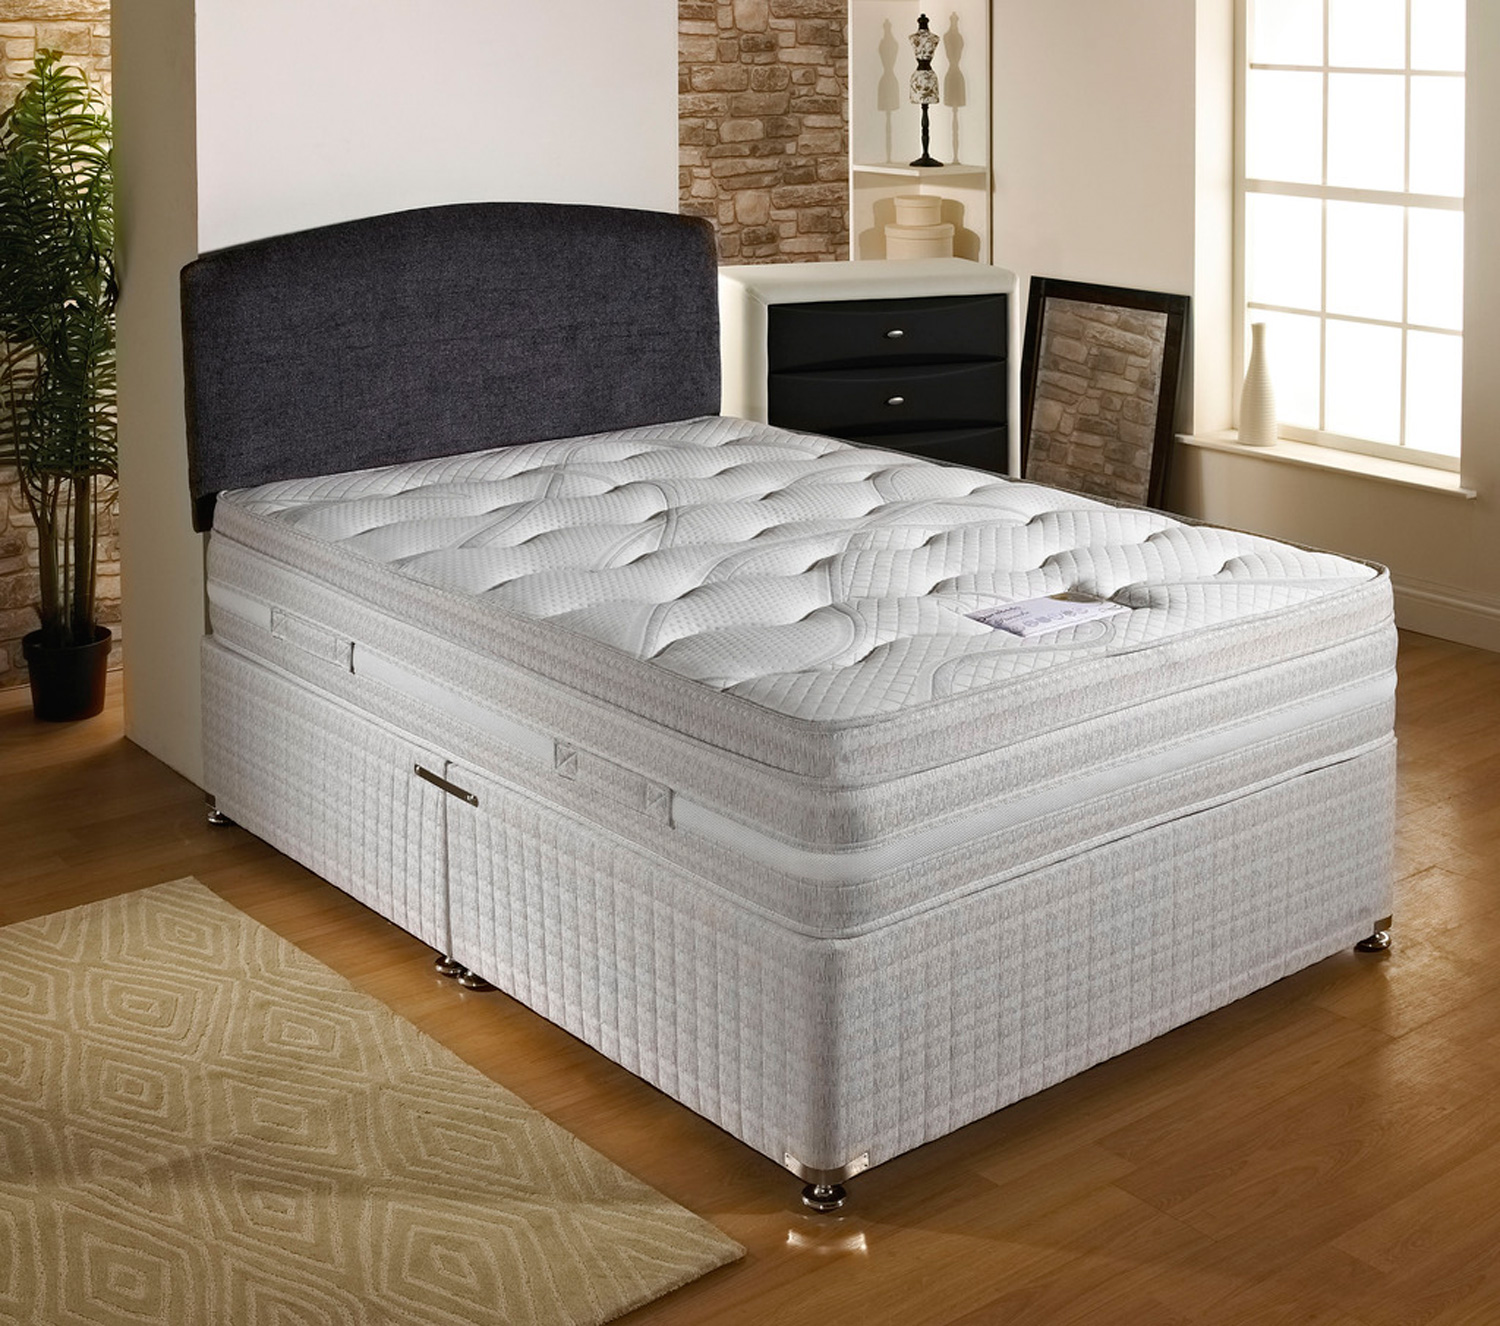 Durabed Panache Small Double Divan Set